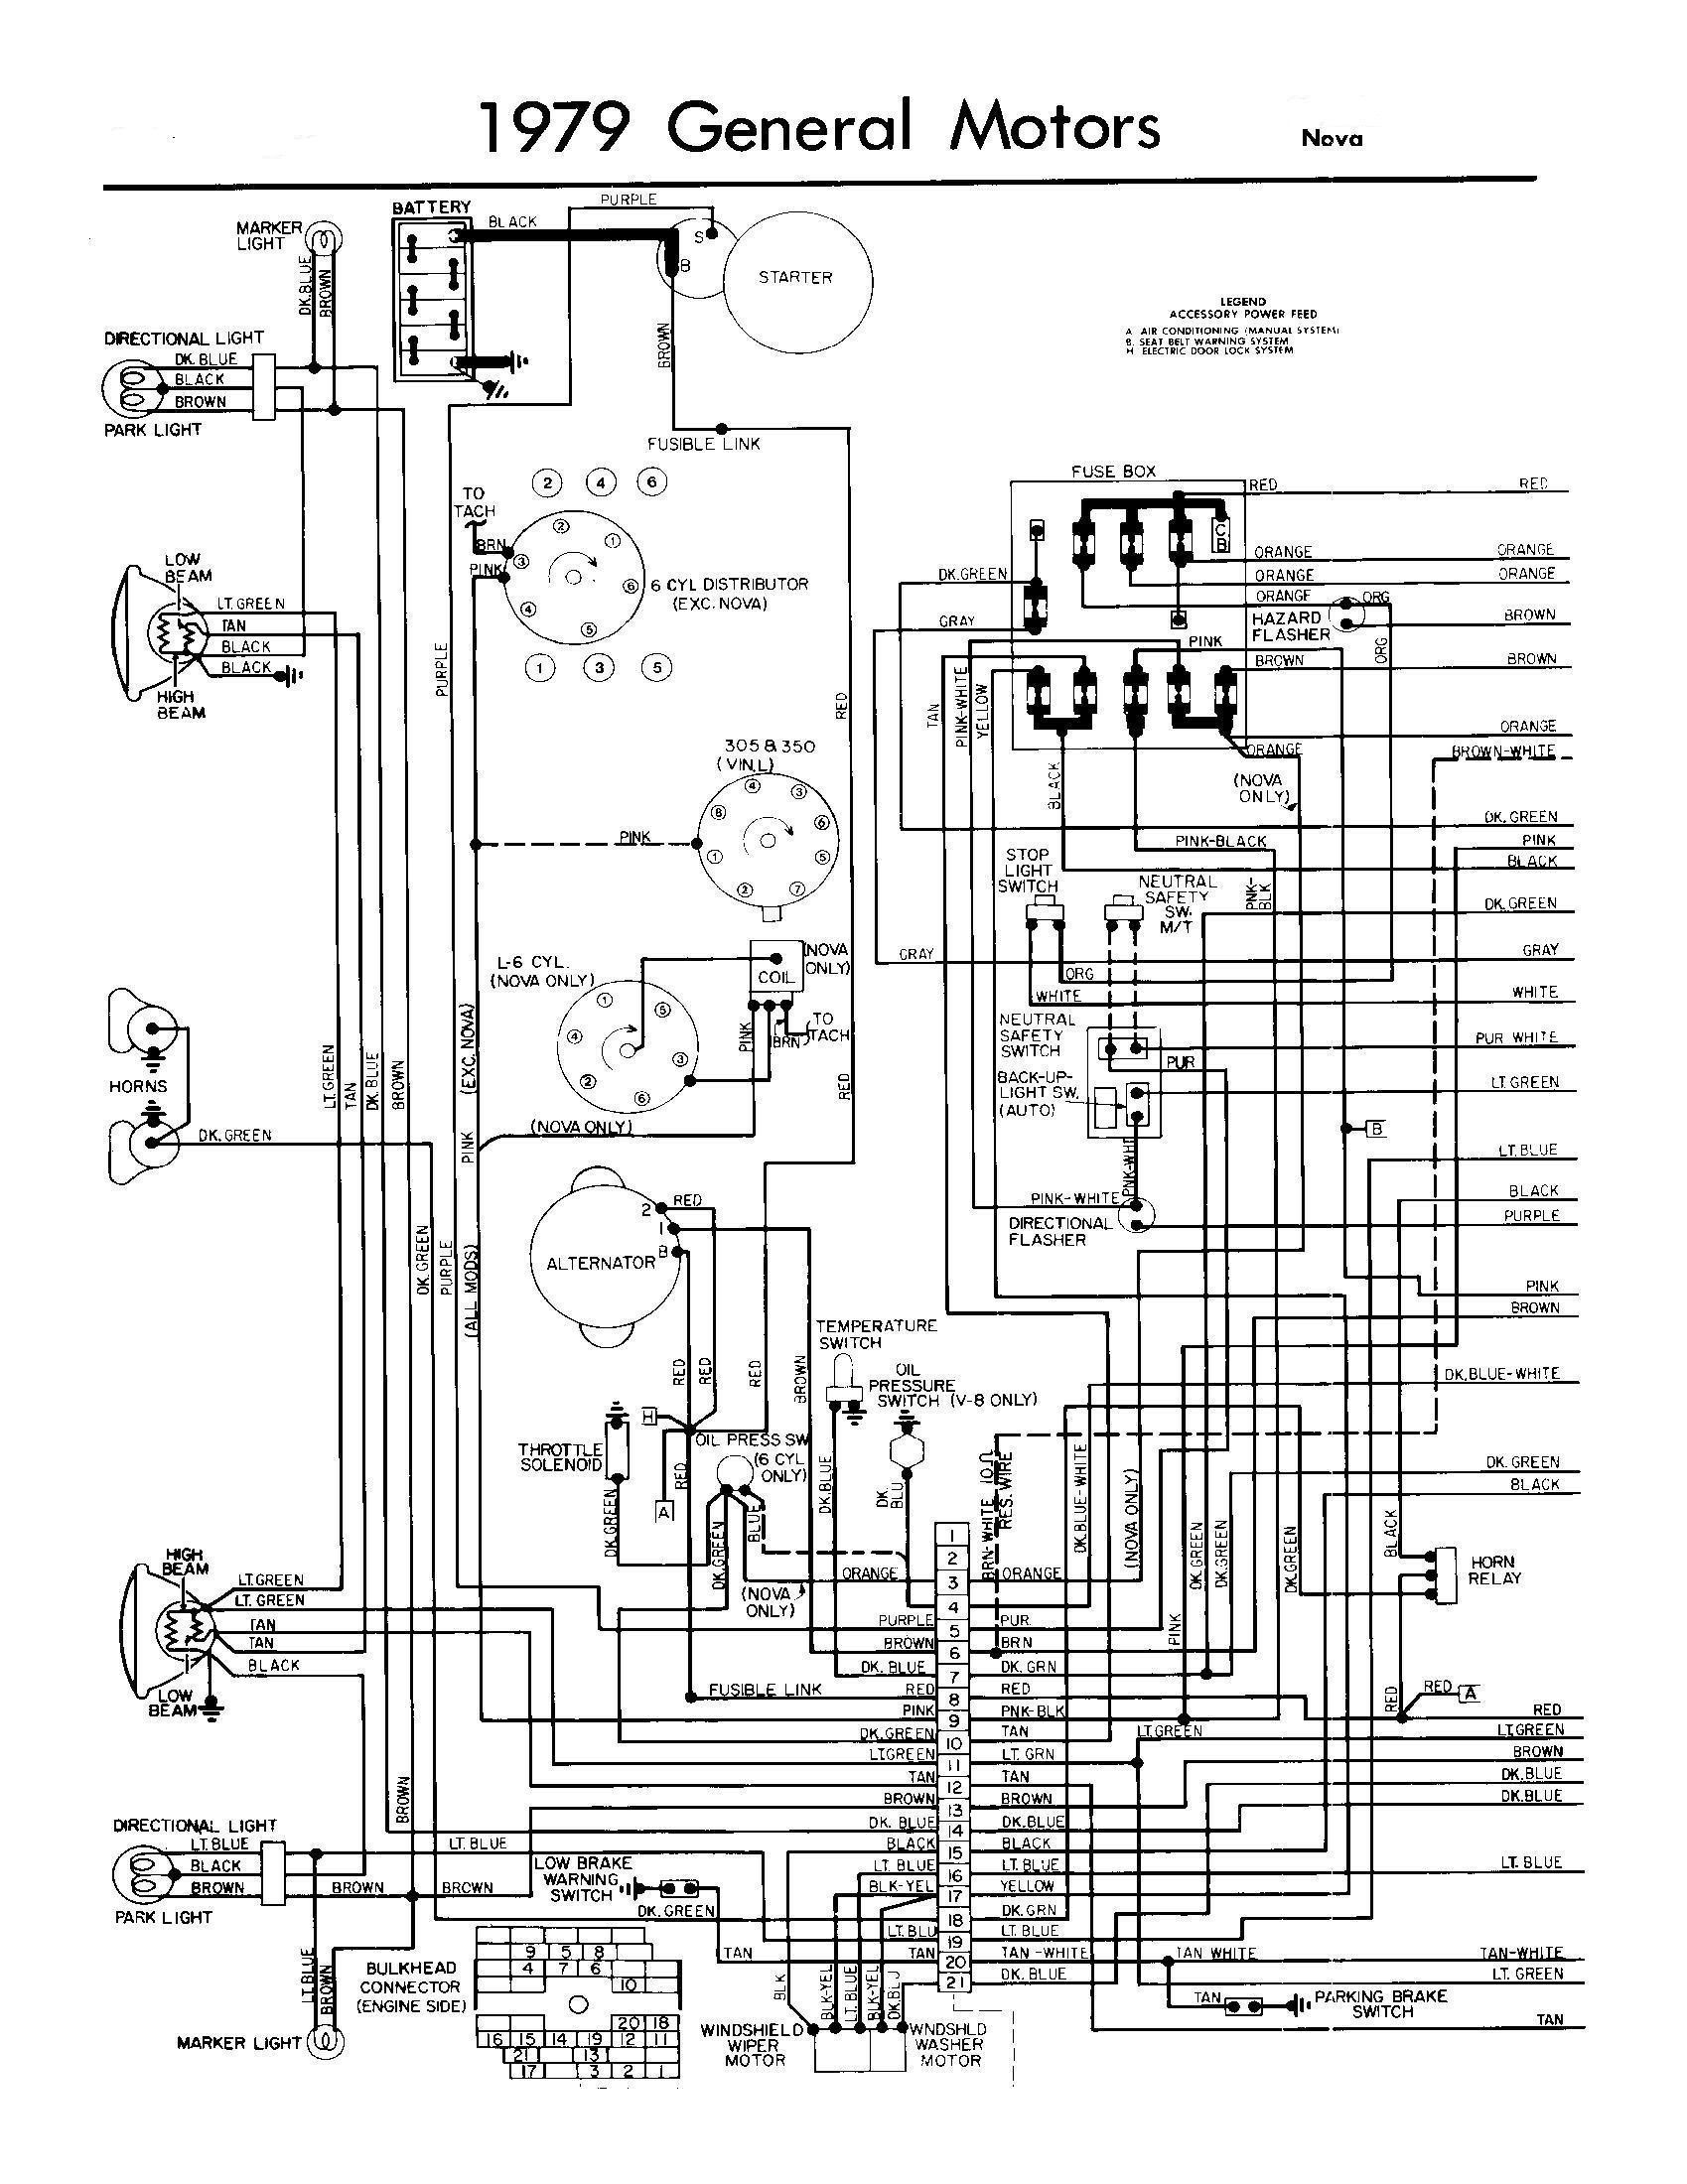 1972 Camaro Fuse Box Diagram Wiring Schematic Wiring Diagram Verison Verison Lastanzadeltempo It